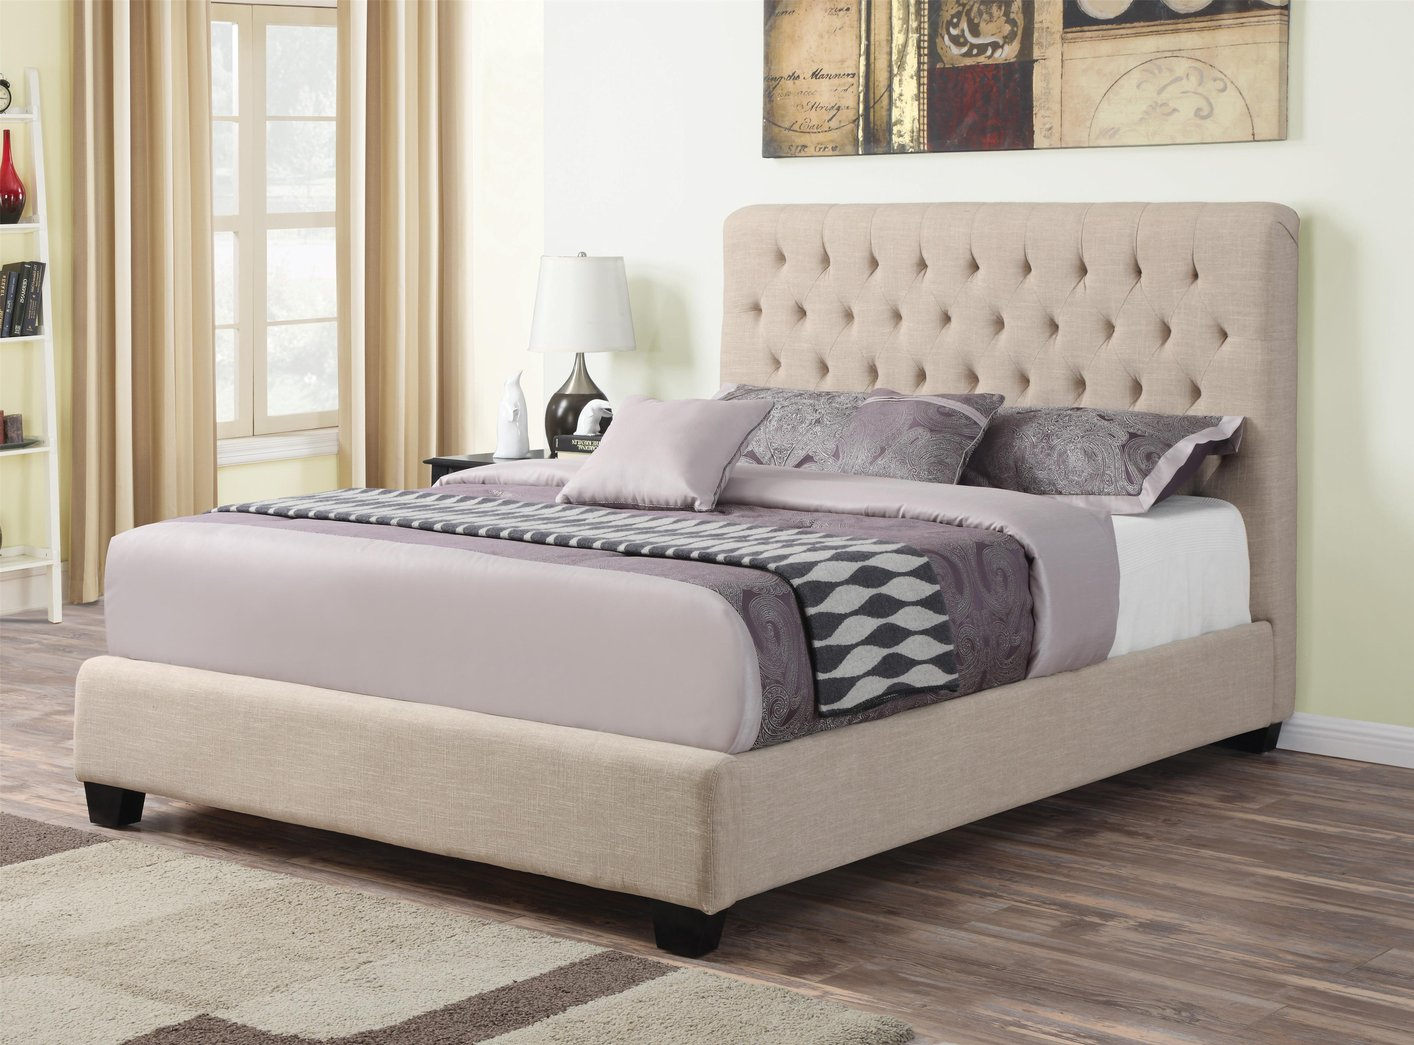 Coaster 300007q Beige Queen Size Fabric Bed Steal A Sofa Furniture Outlet Los Angeles Ca